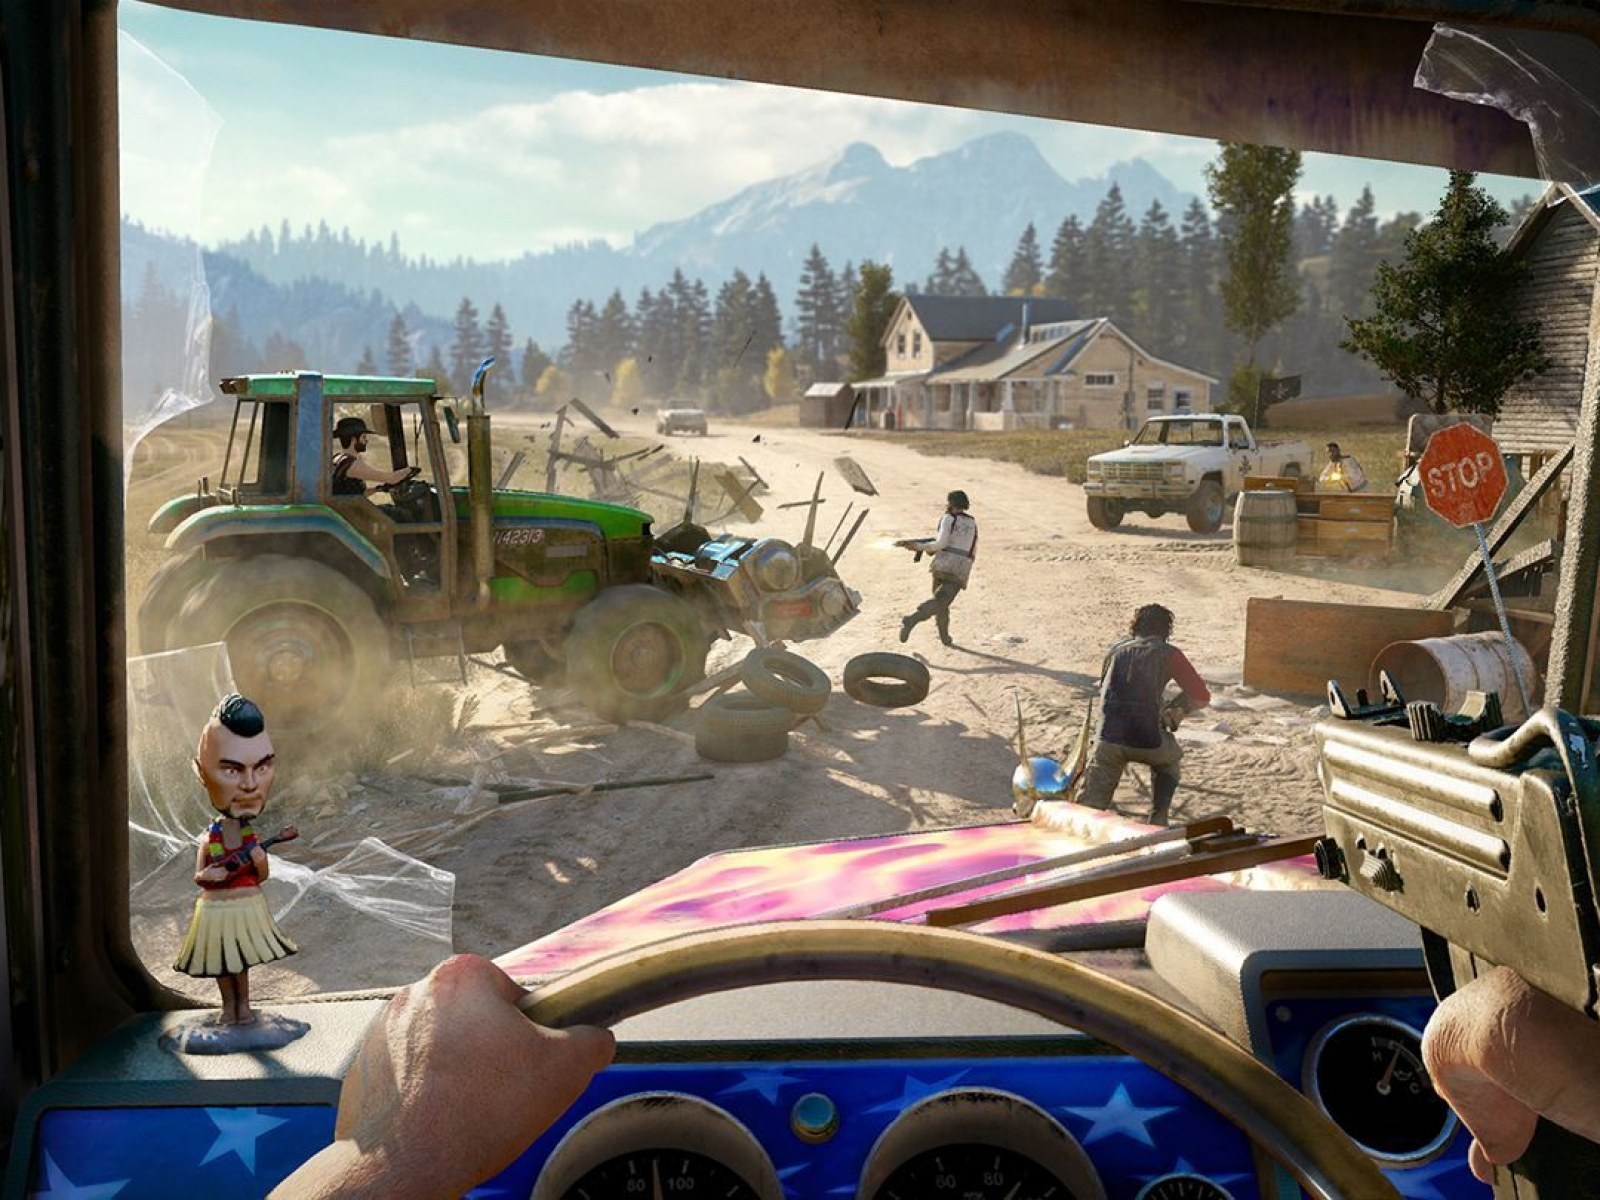 Far Cry 5 1 06 Update Patch Notes Reveal New Outfits Available Including Pagan Min